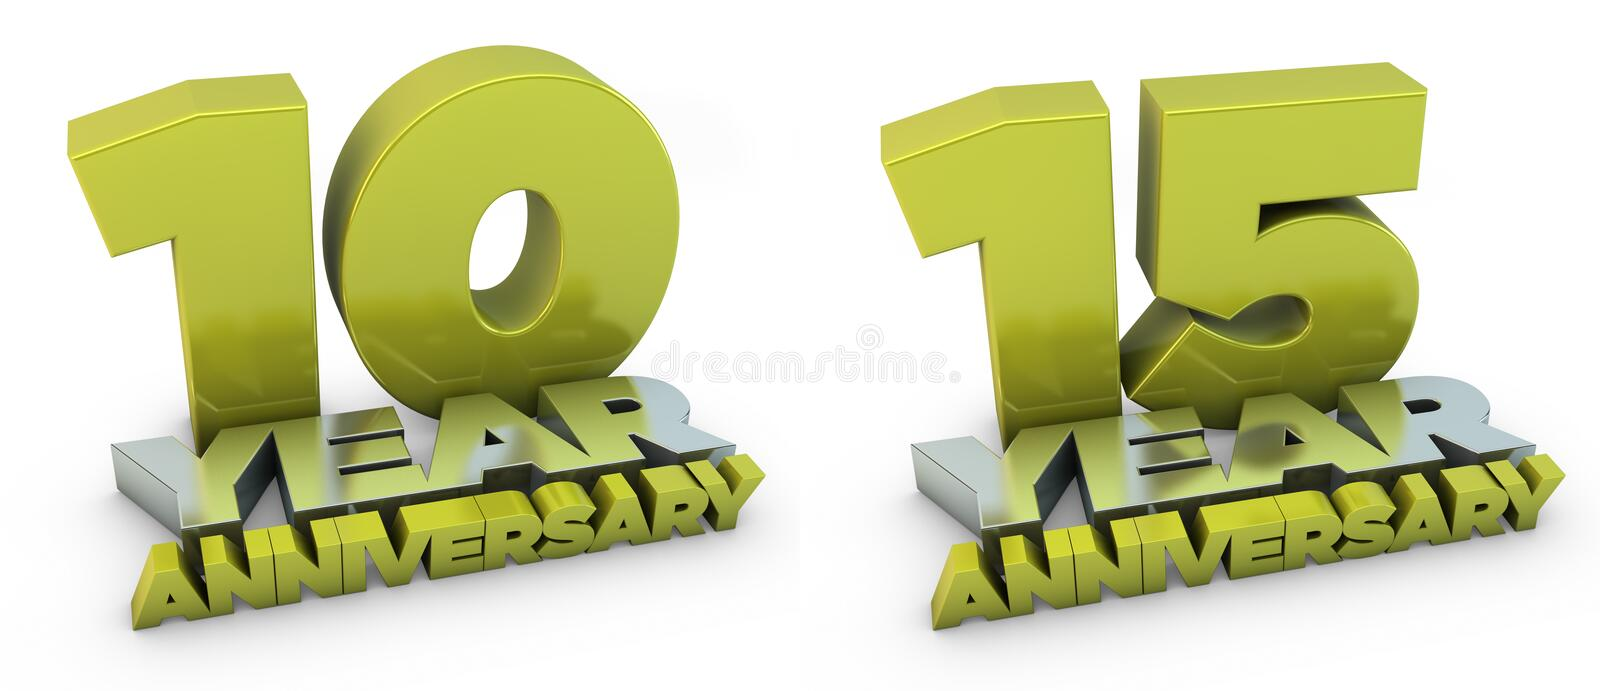 Download 10 and 15 year anniversary stock illustration. Image of illustration - 14383669